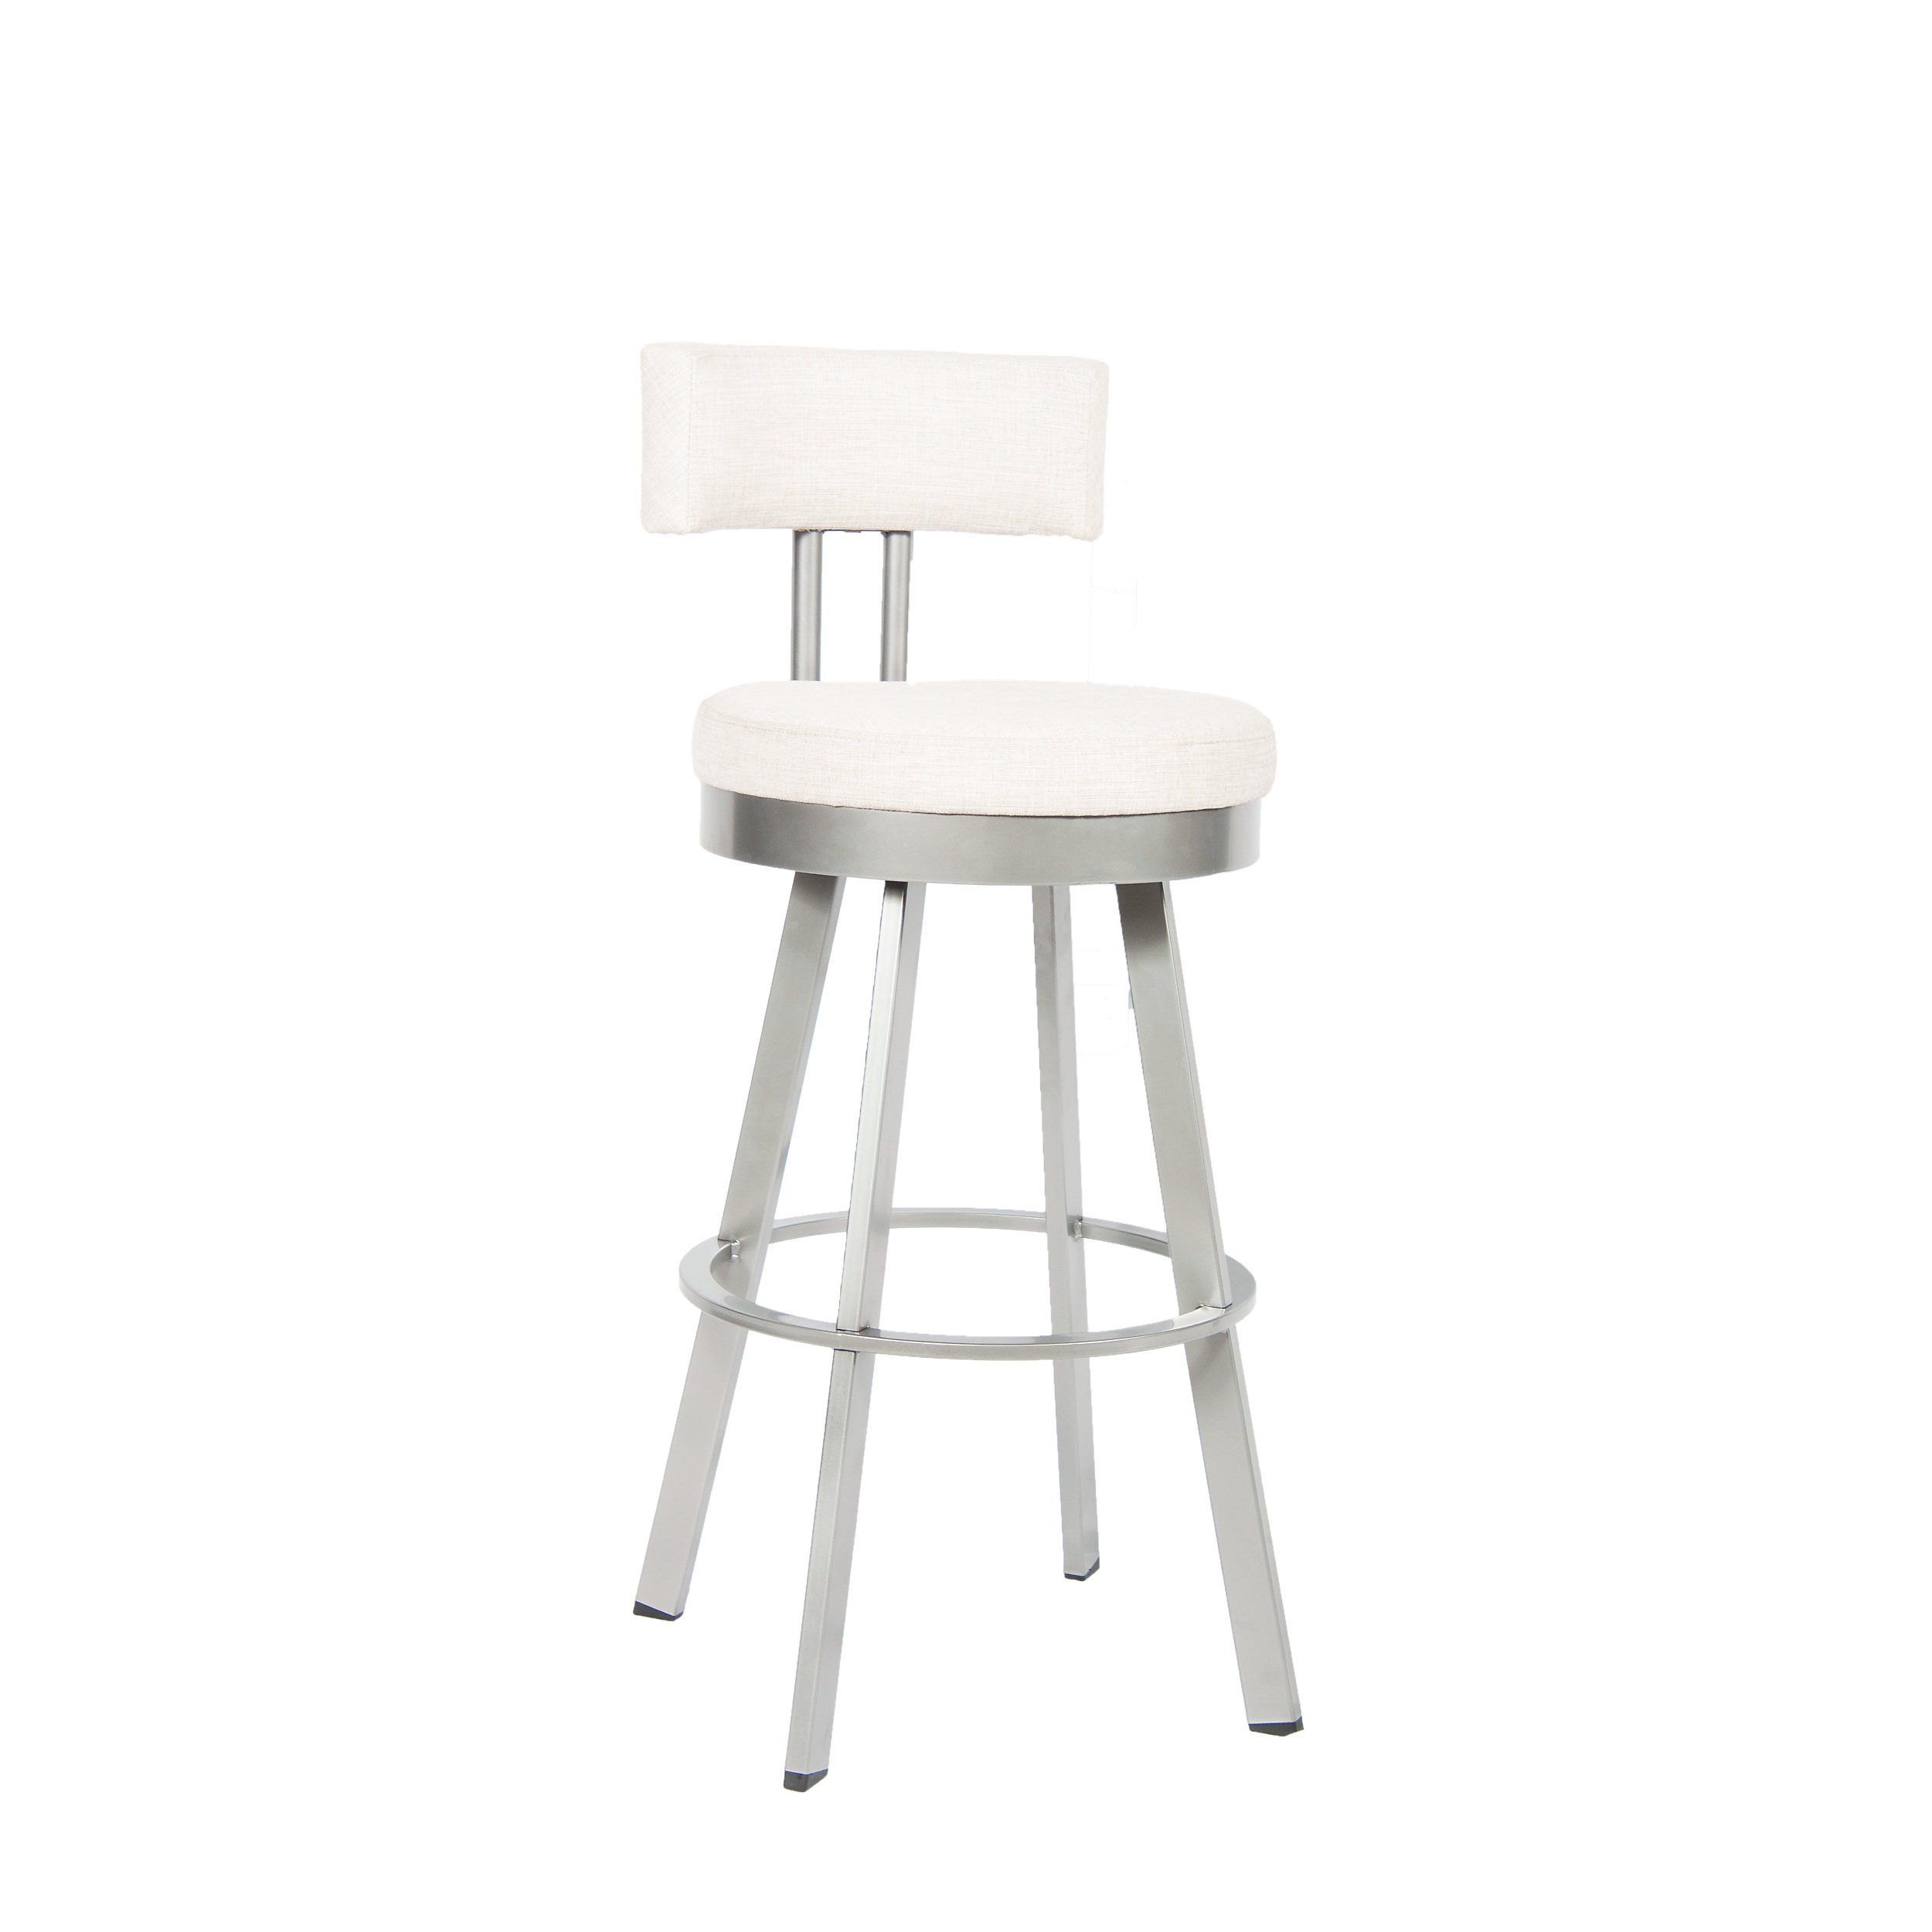 White Padded Bar Stool With Back Non Swivel Bar Stool